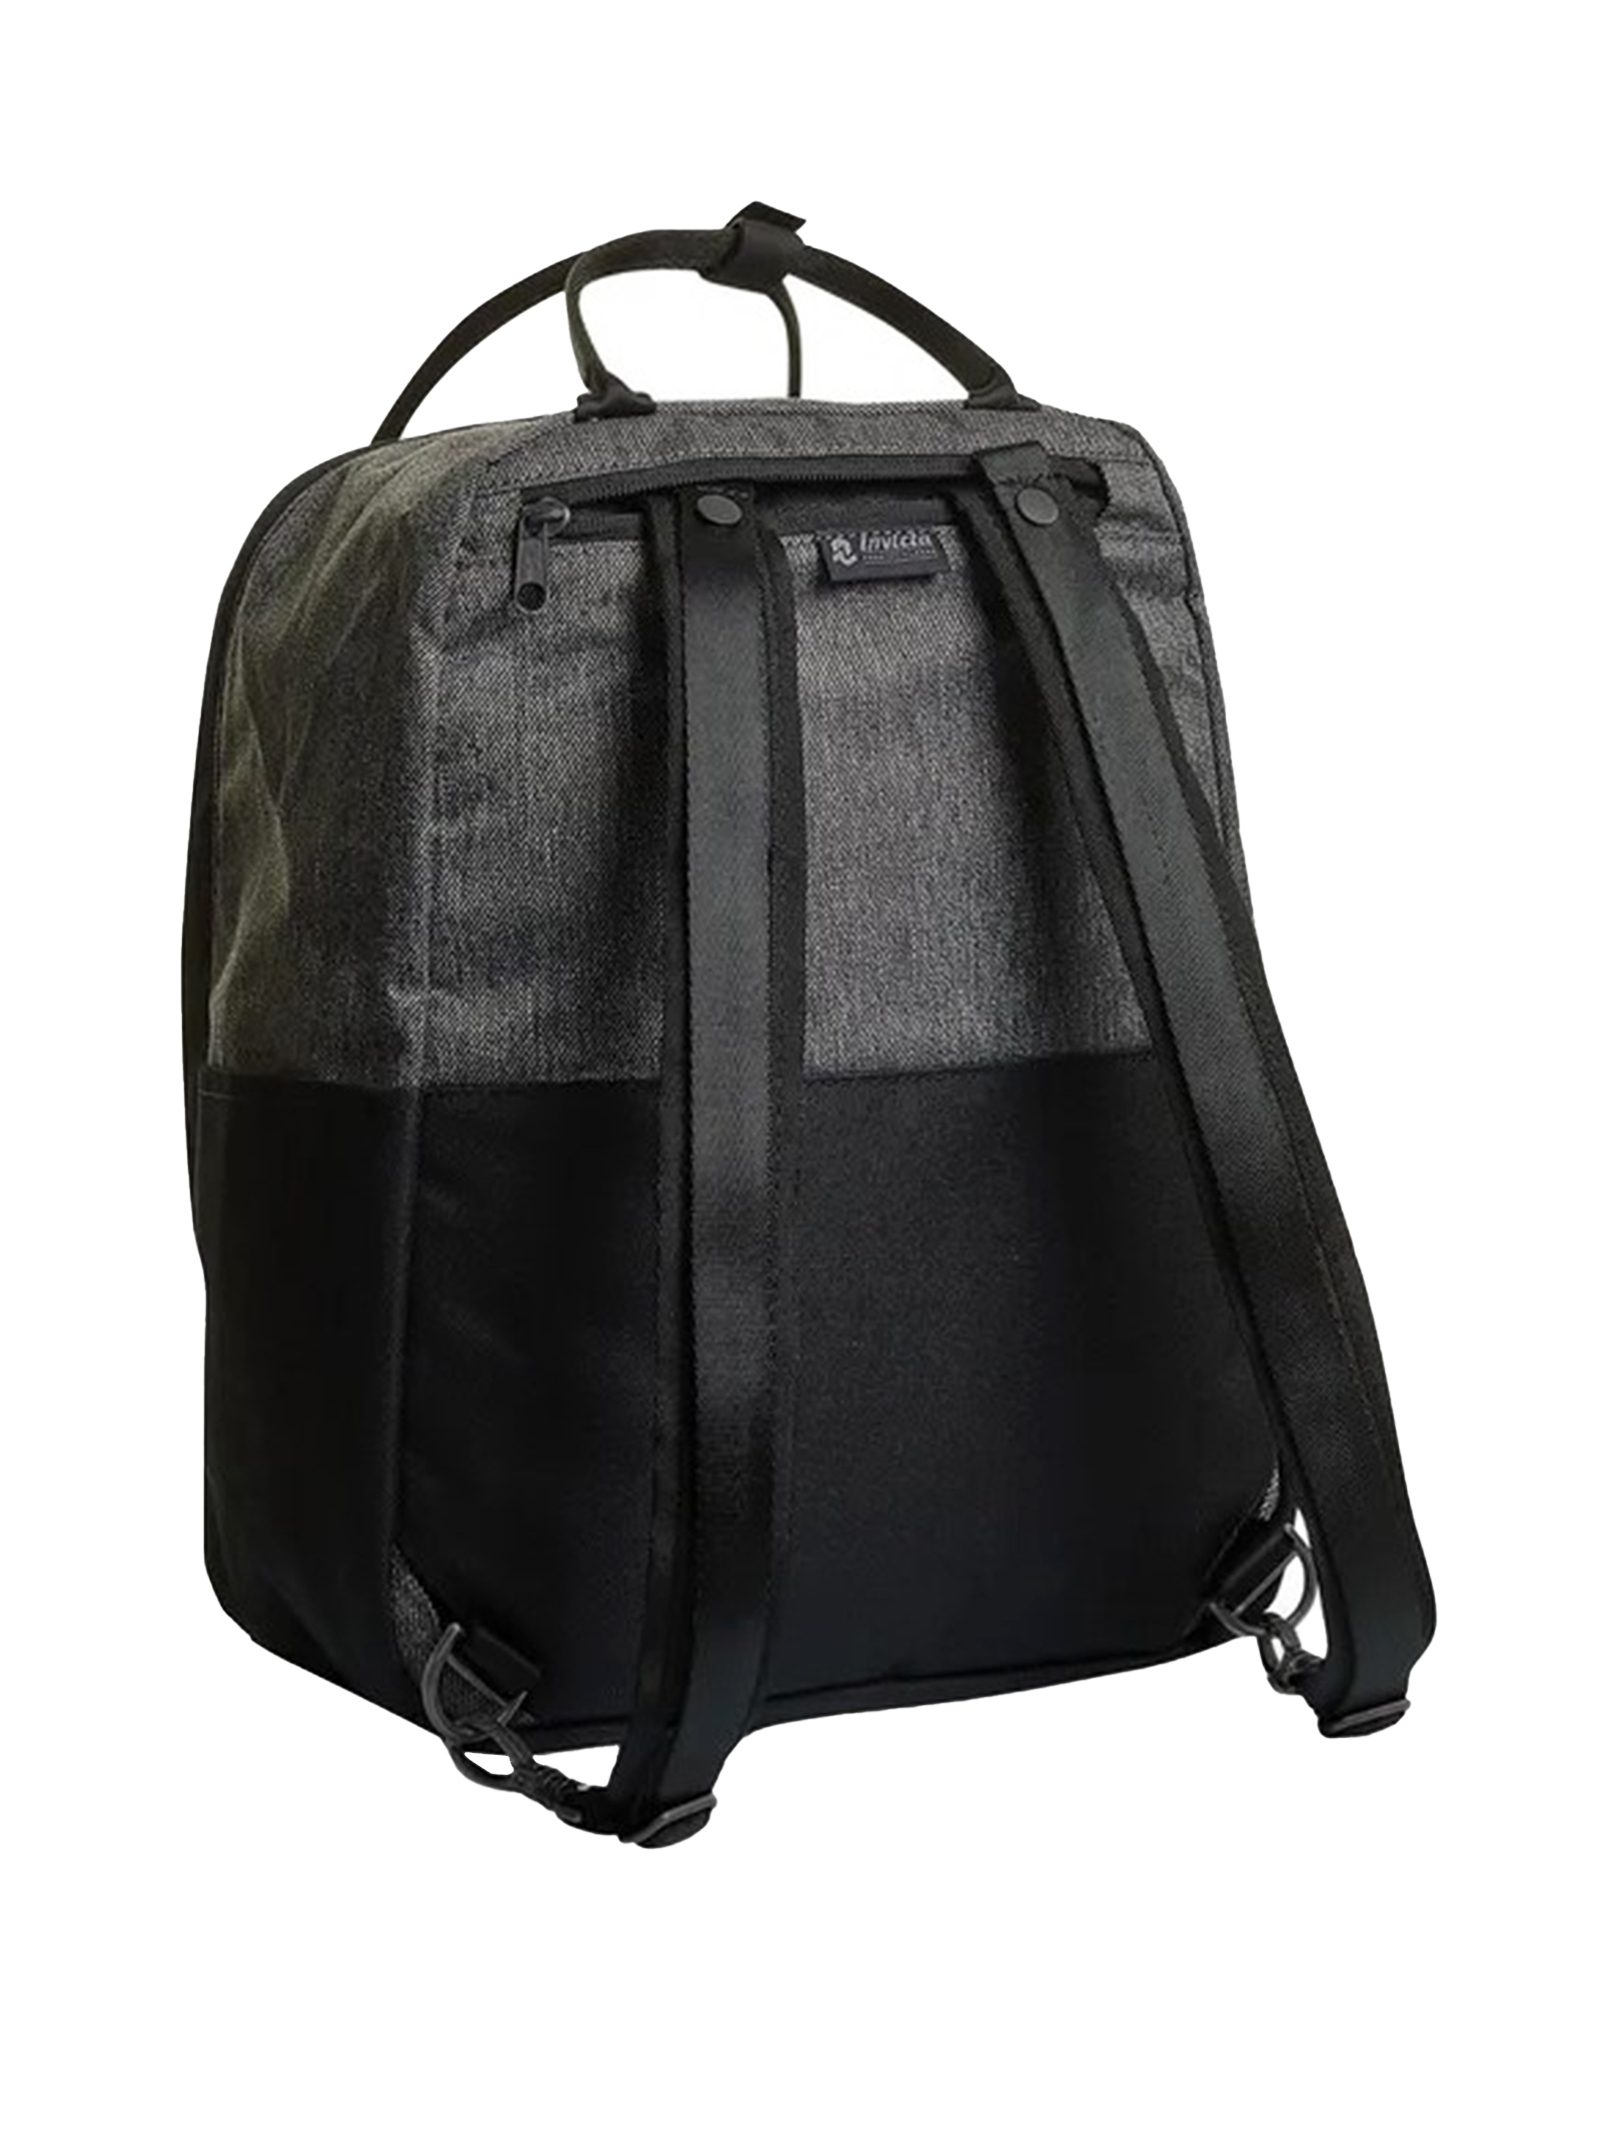 Unisex Icon Collection Shylla Black Monochrome Backpack with Padded Back and Shoulder Straps 206002115 Invicta | Bags and backpacks | SHYLLAPREMIUM899